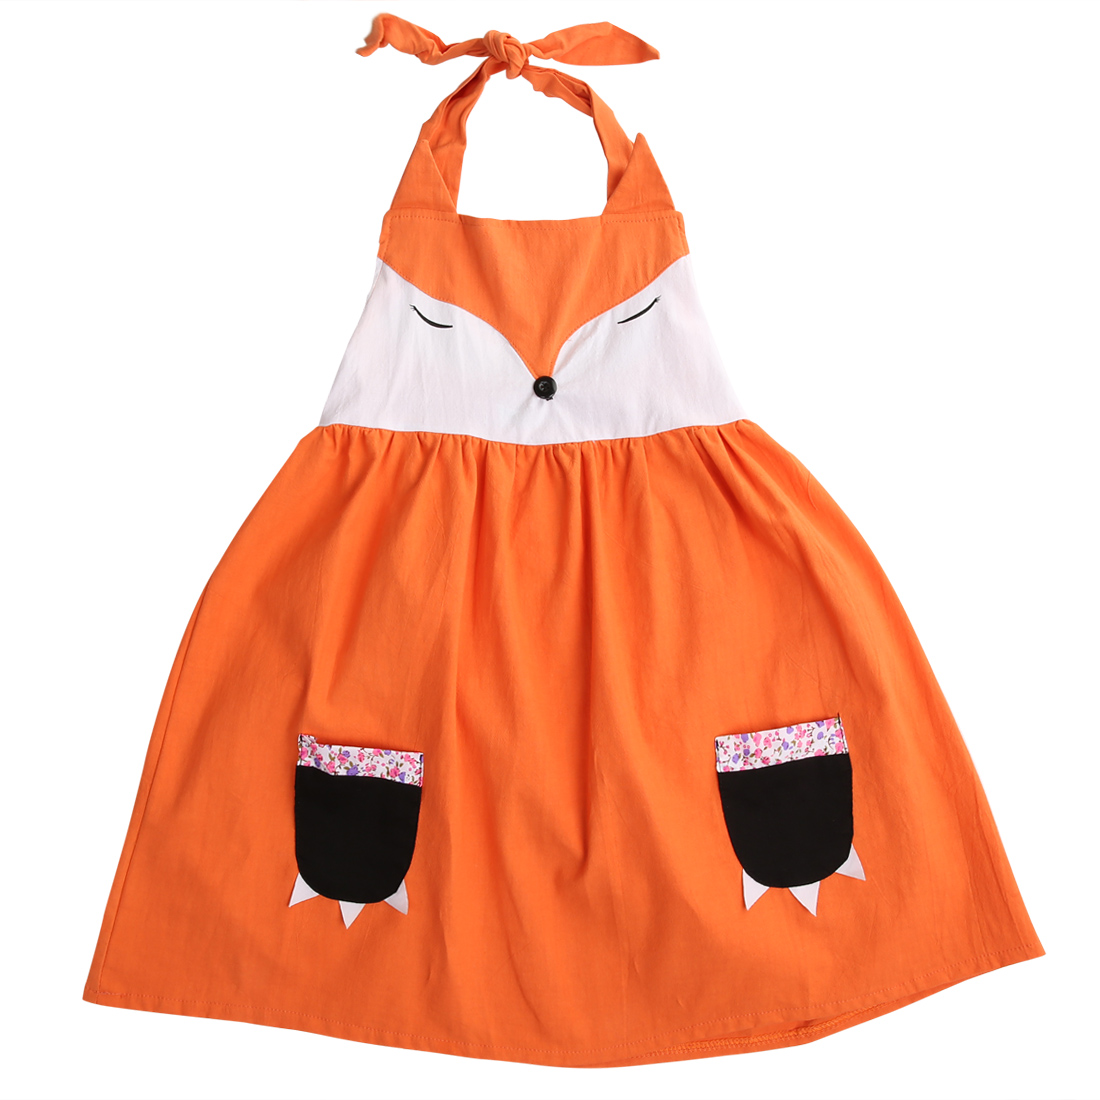 2017 Fashion Cute Baby Girls Summer Clothes Fox Strappy Sleeveless Dress Kids Cartoon Clothes Princess Party Dress 2-7Y<br><br>Aliexpress